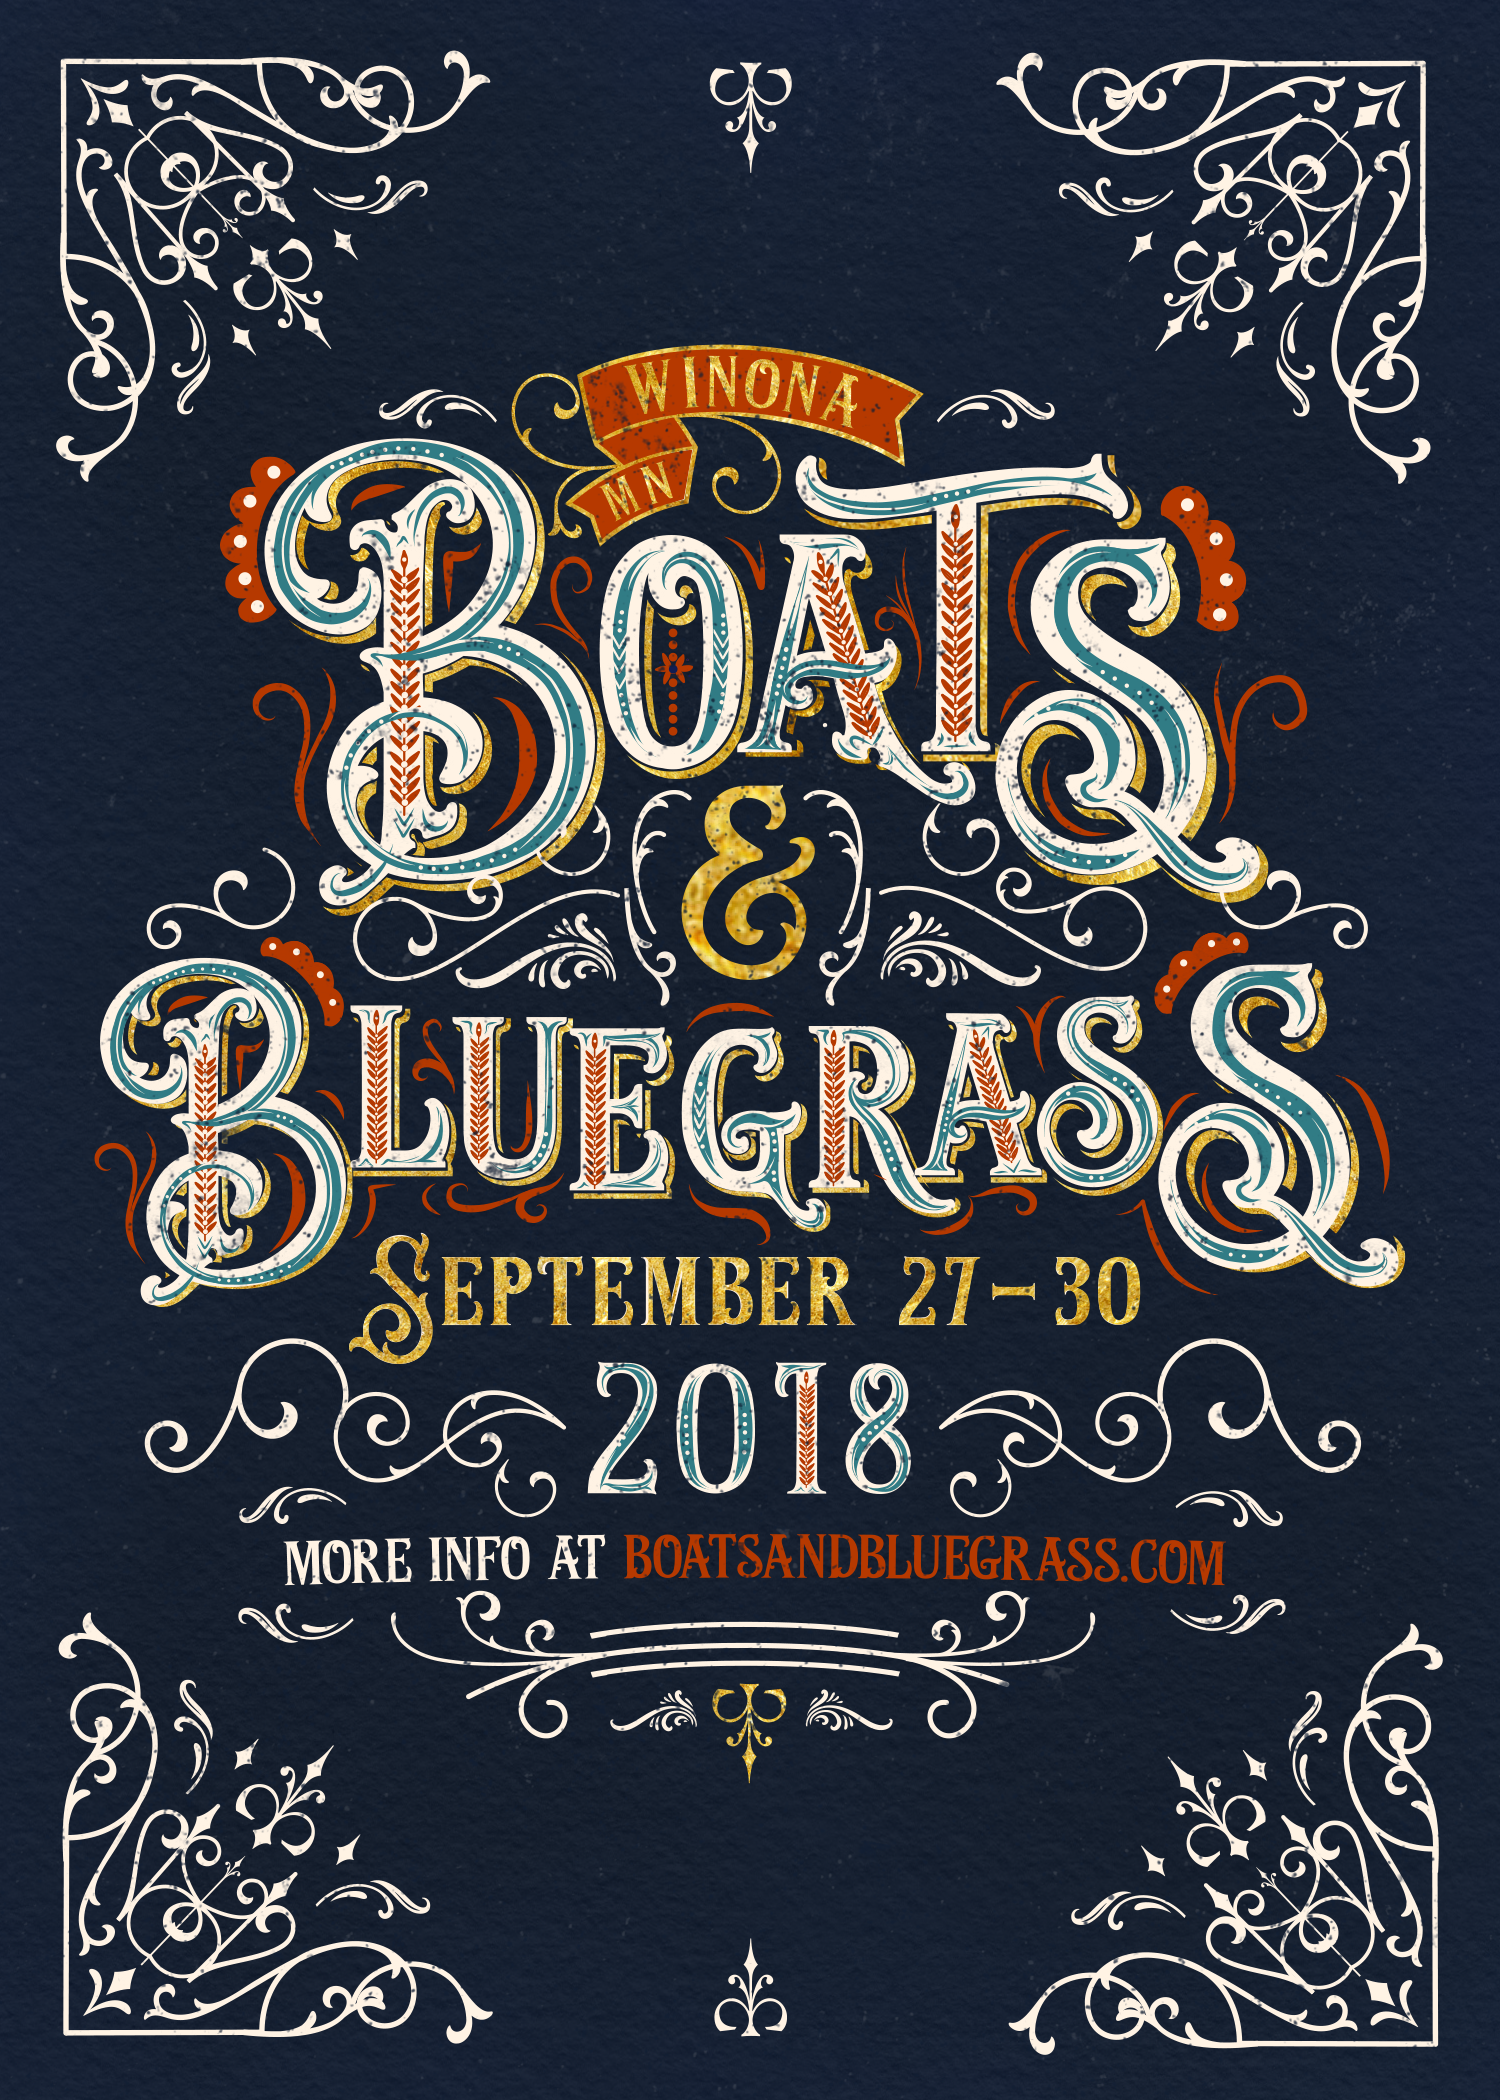 Revised Boats and Bluegrass 2018 Save the Date Final Navy and White.png